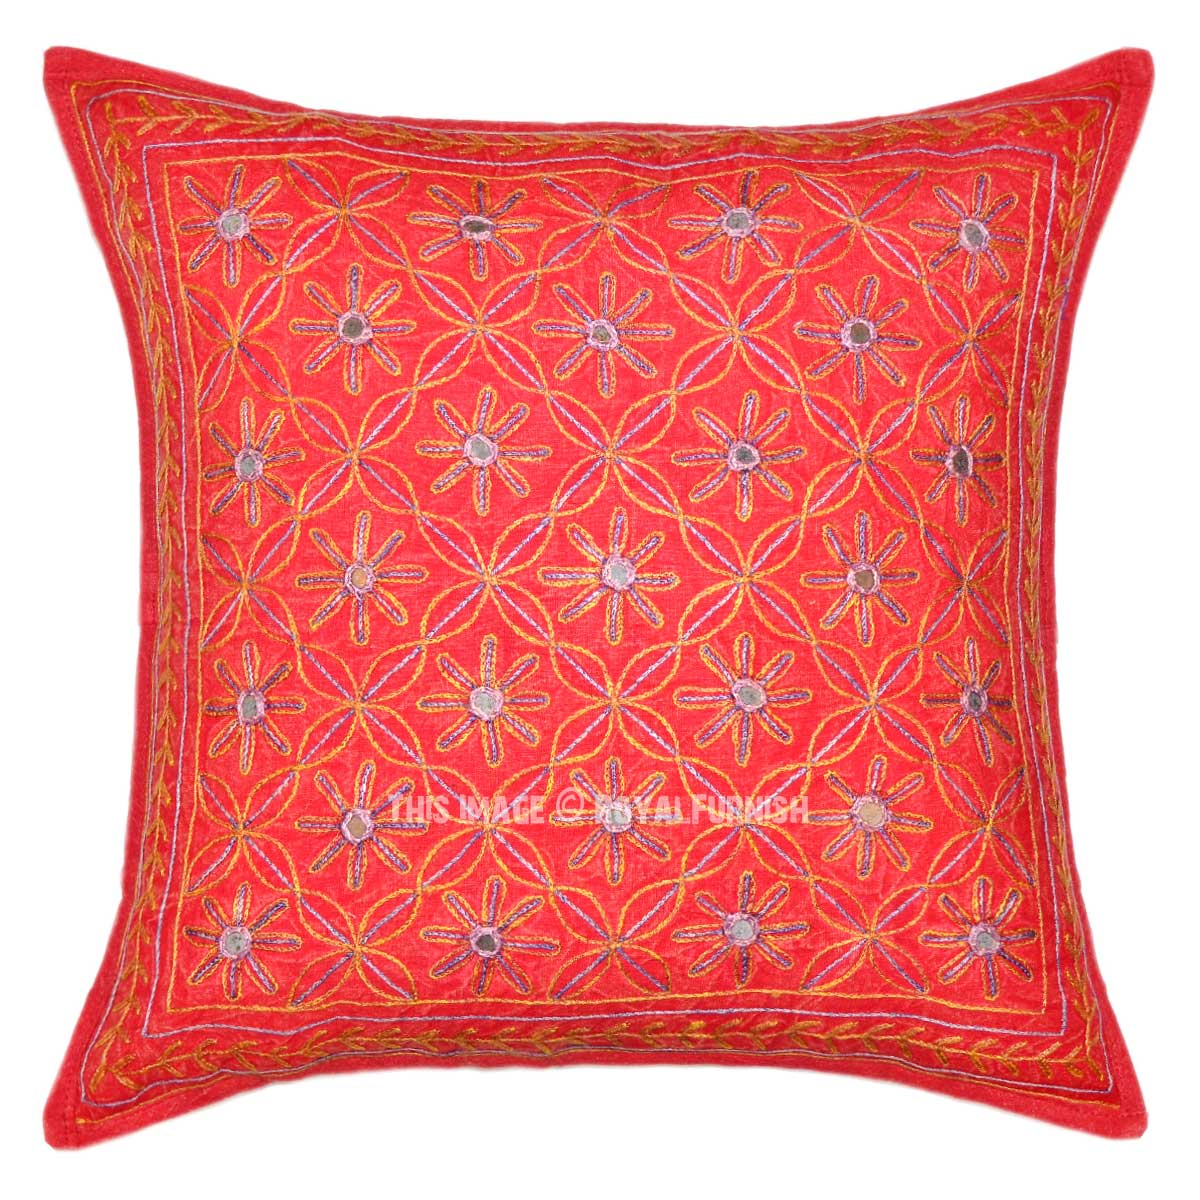 Red 16X16 Decorative One-Of-A-Kind Unique Embroidered Pillow Cover - RoyalFurnish.com